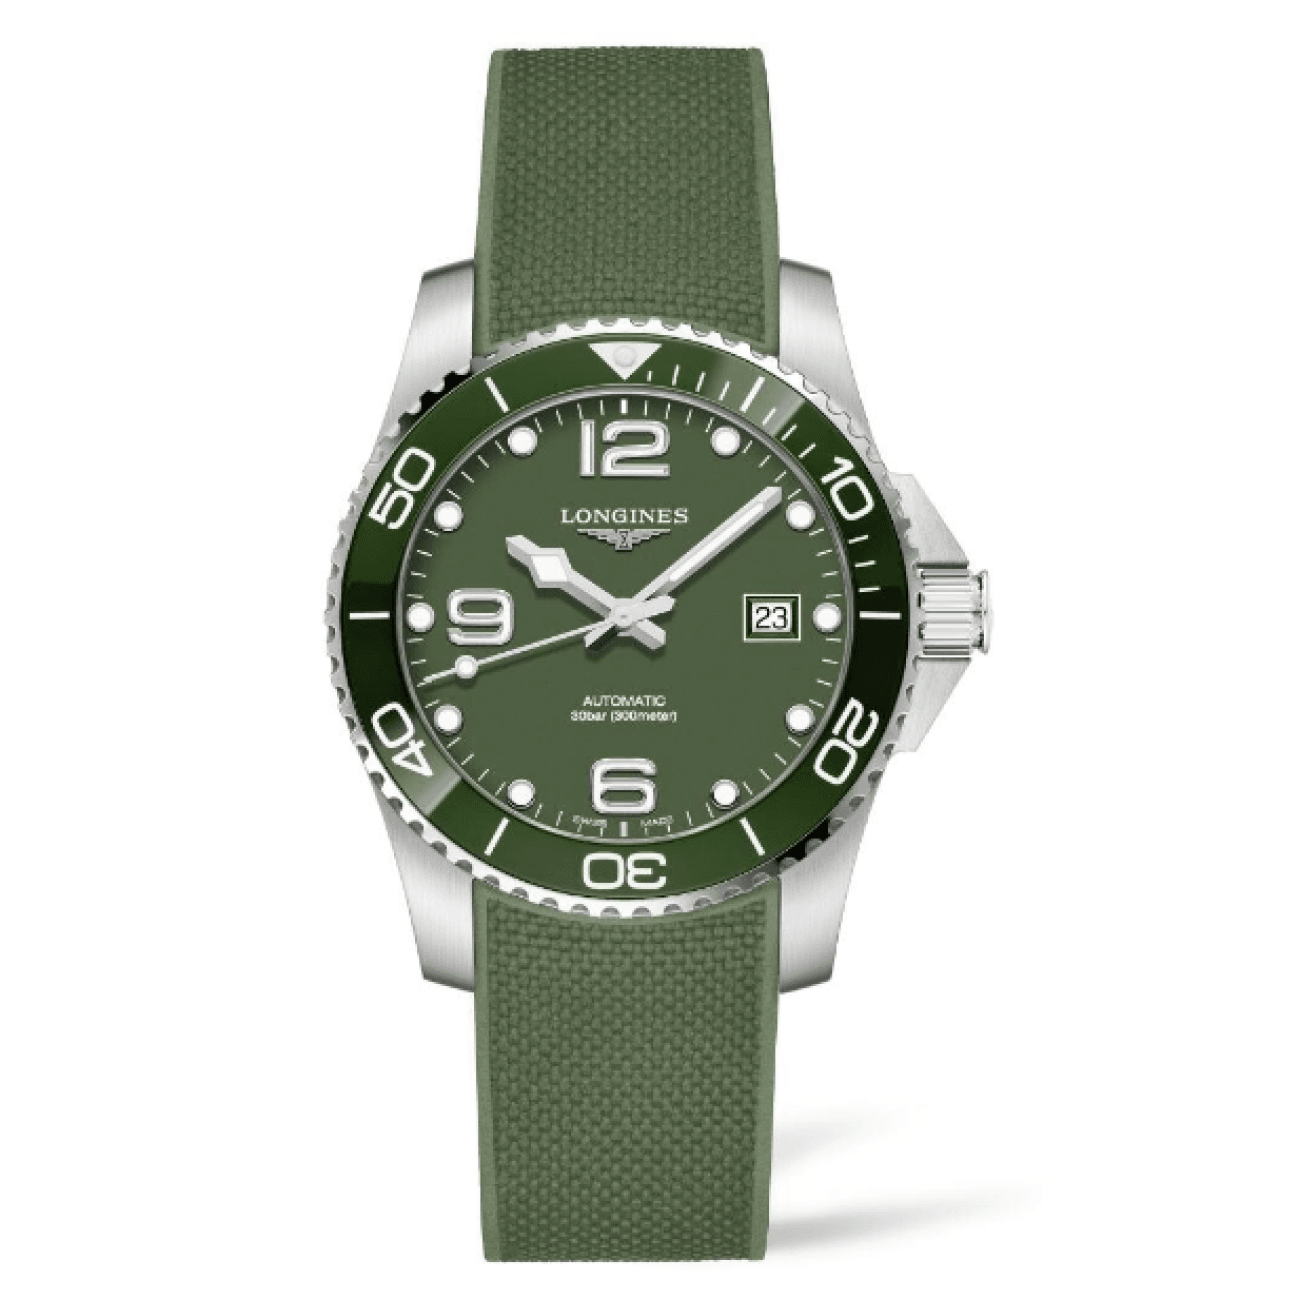 Longines Watches - HYDROCONQUEST 41MM GREEN CERAMIC AUTOMATIC DIVING WATCH | Manfredi Jewels